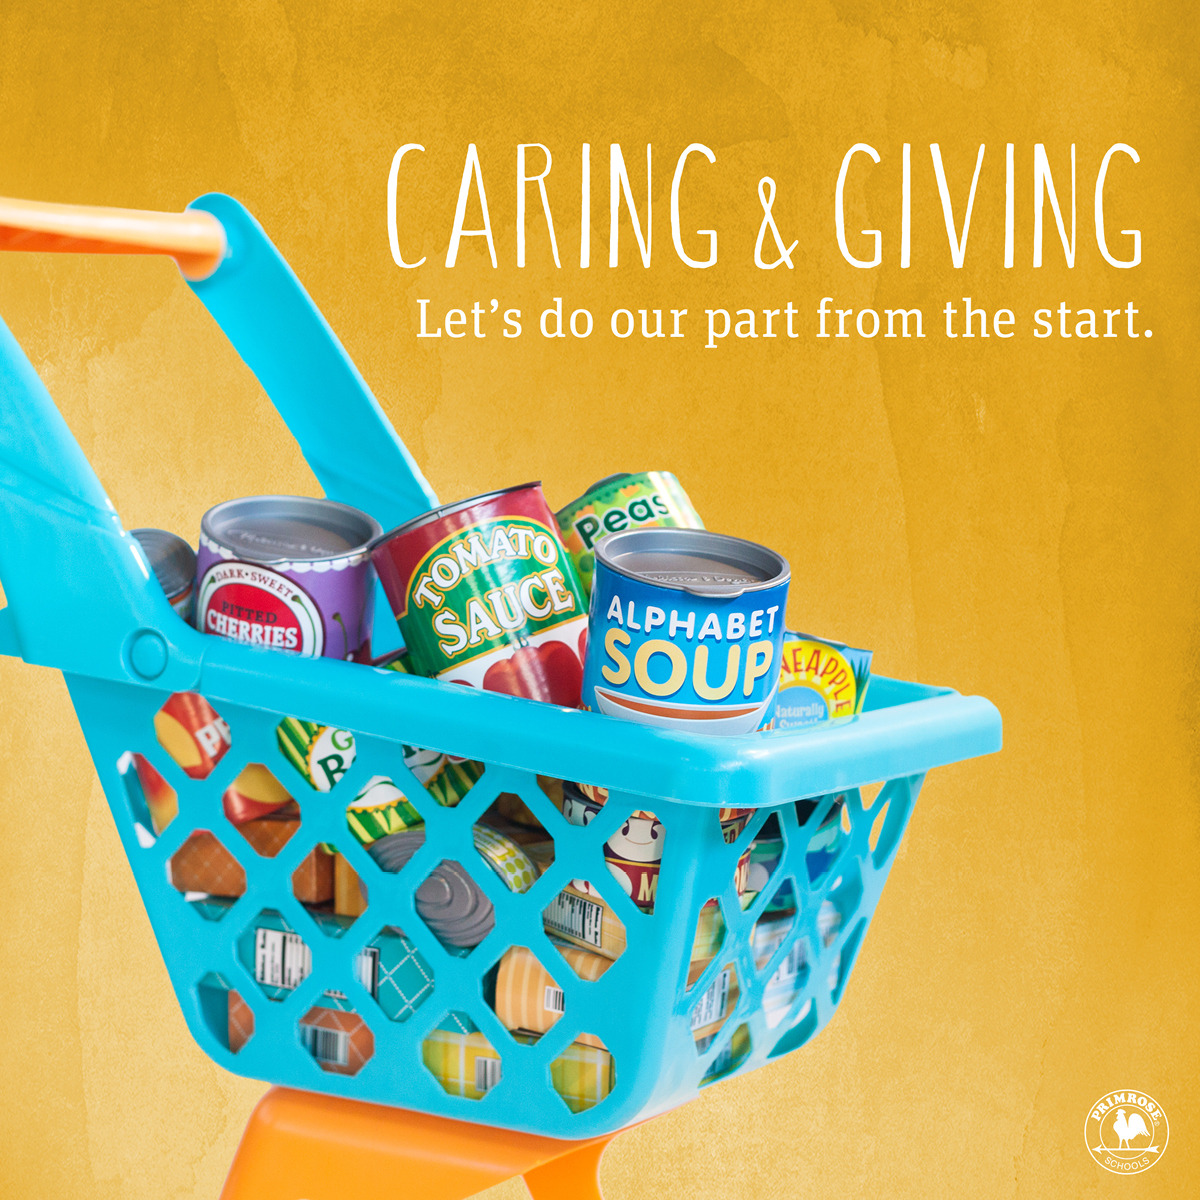 Play grocery cart filled with play cans for donations